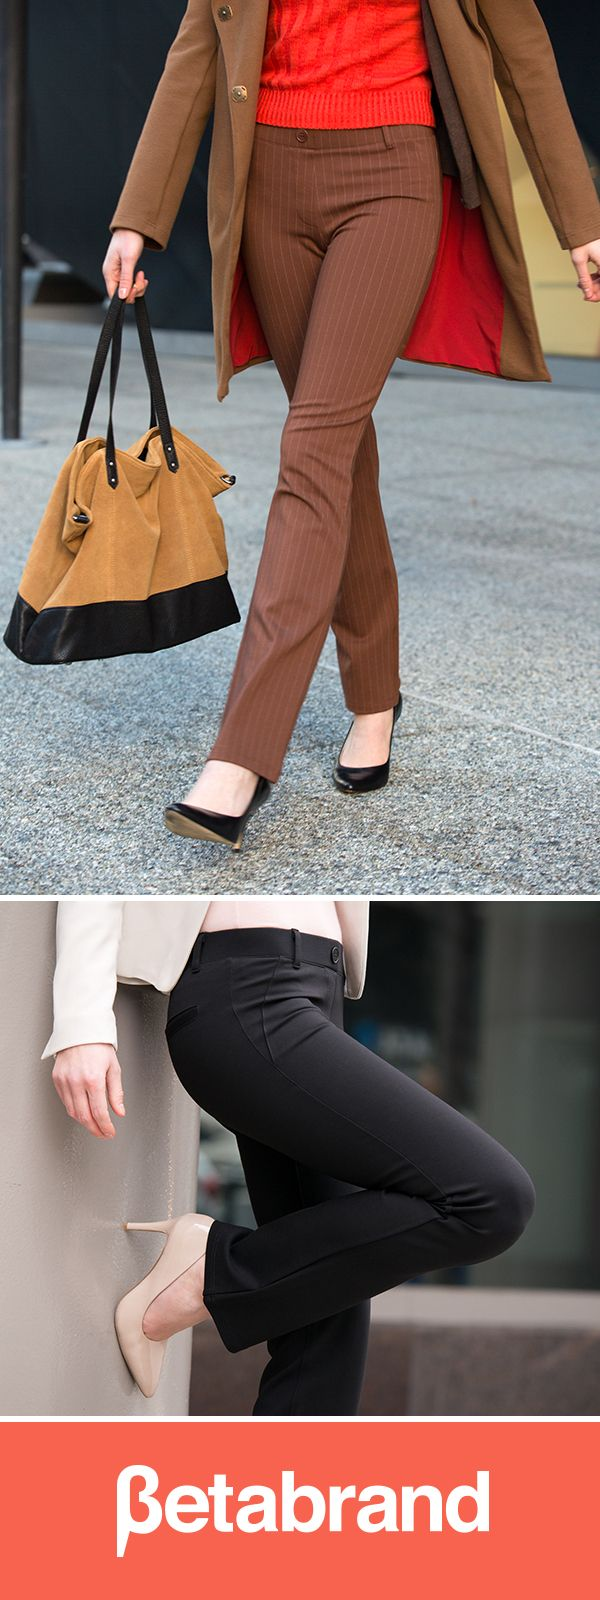 Yoga pants for the office? We don't think that's a stretch.